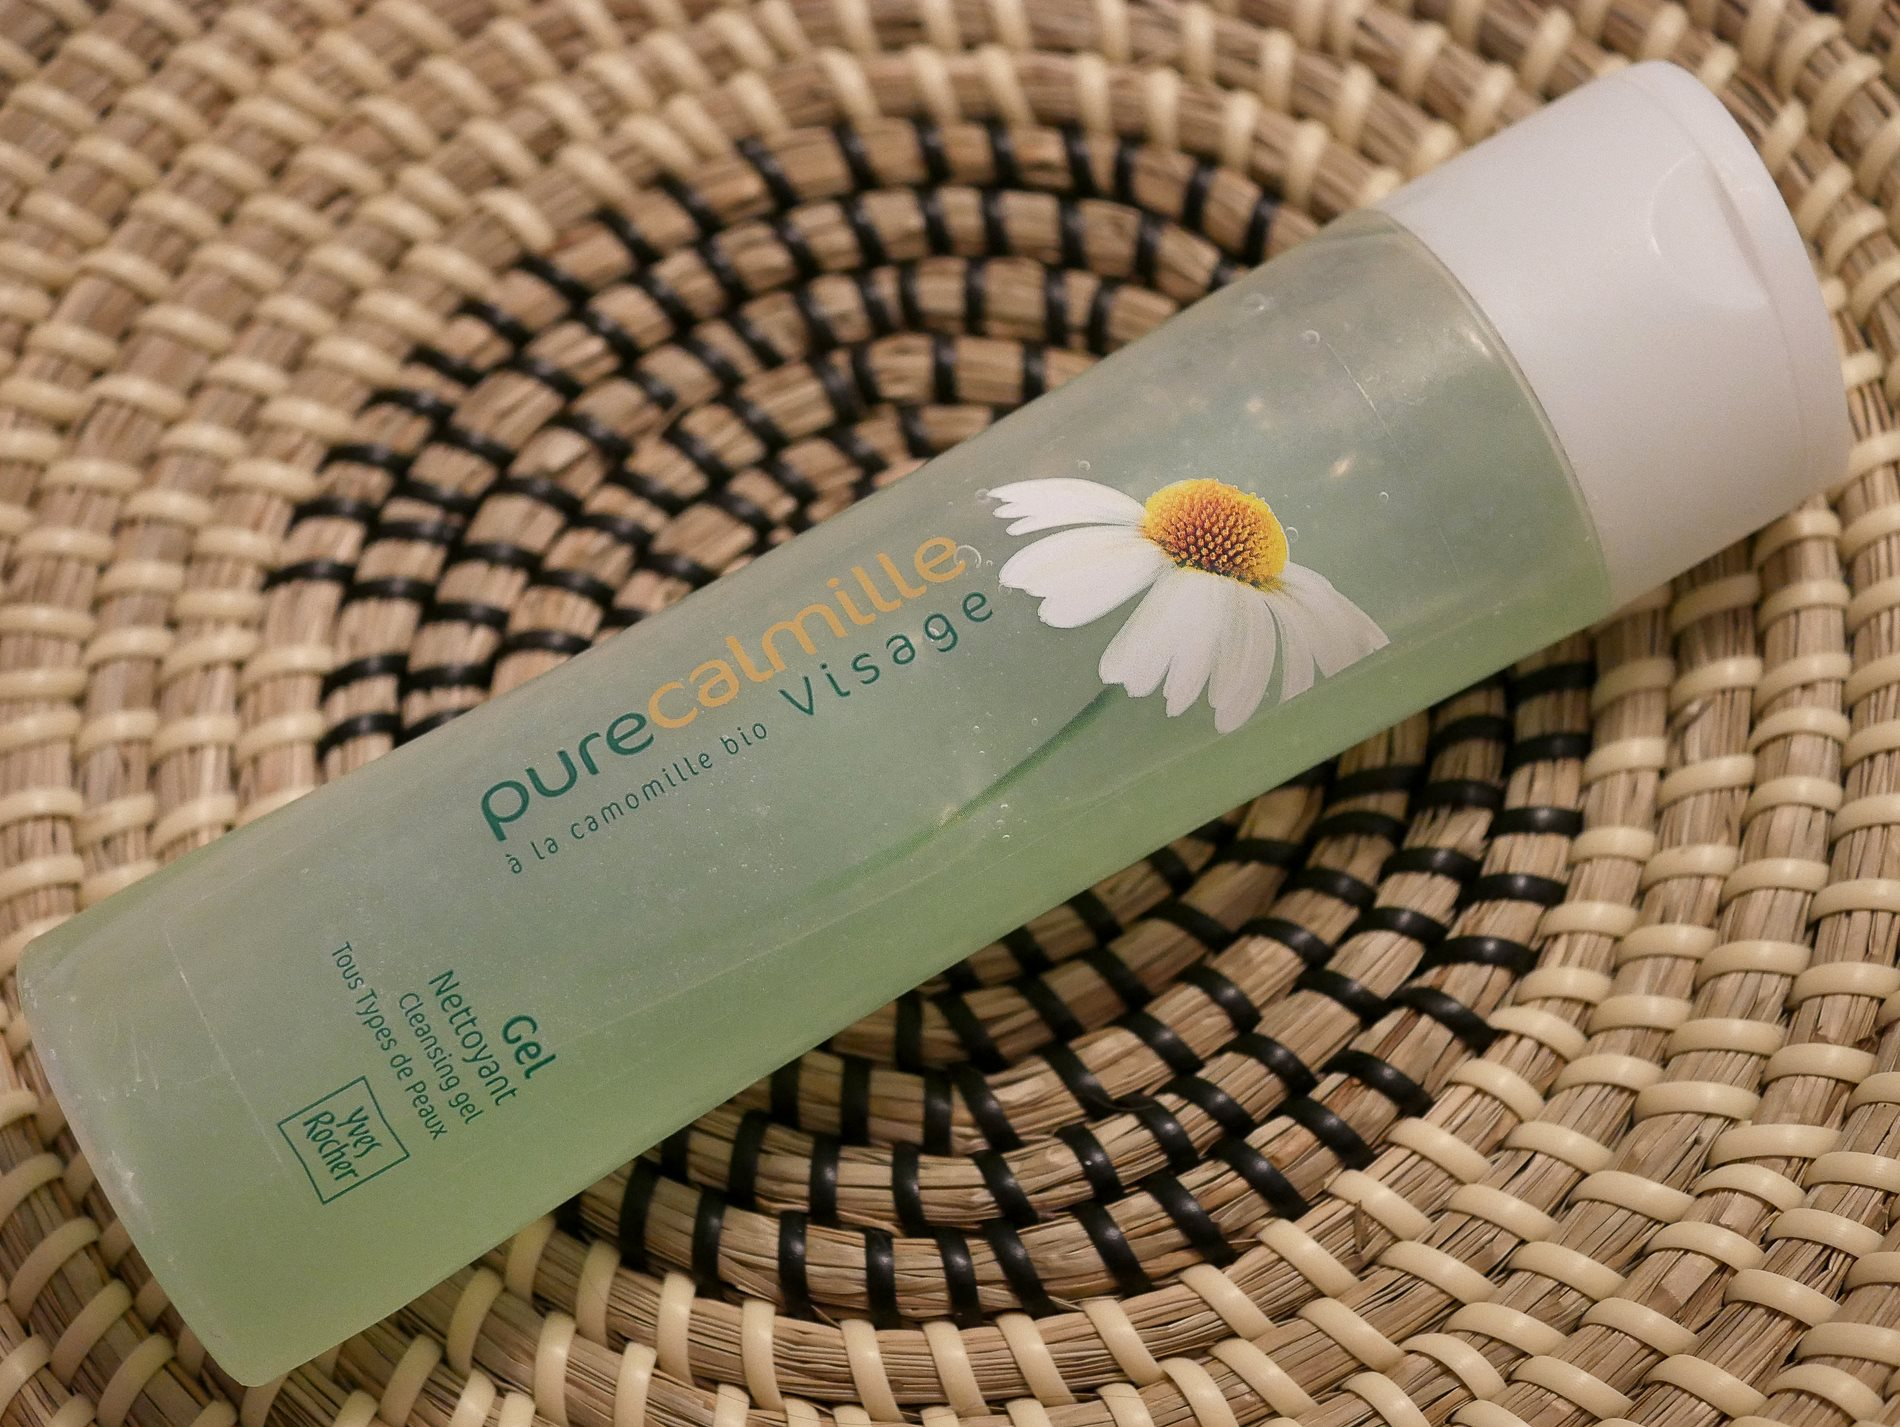 routine purecalmille yves rocher - juliesliberties